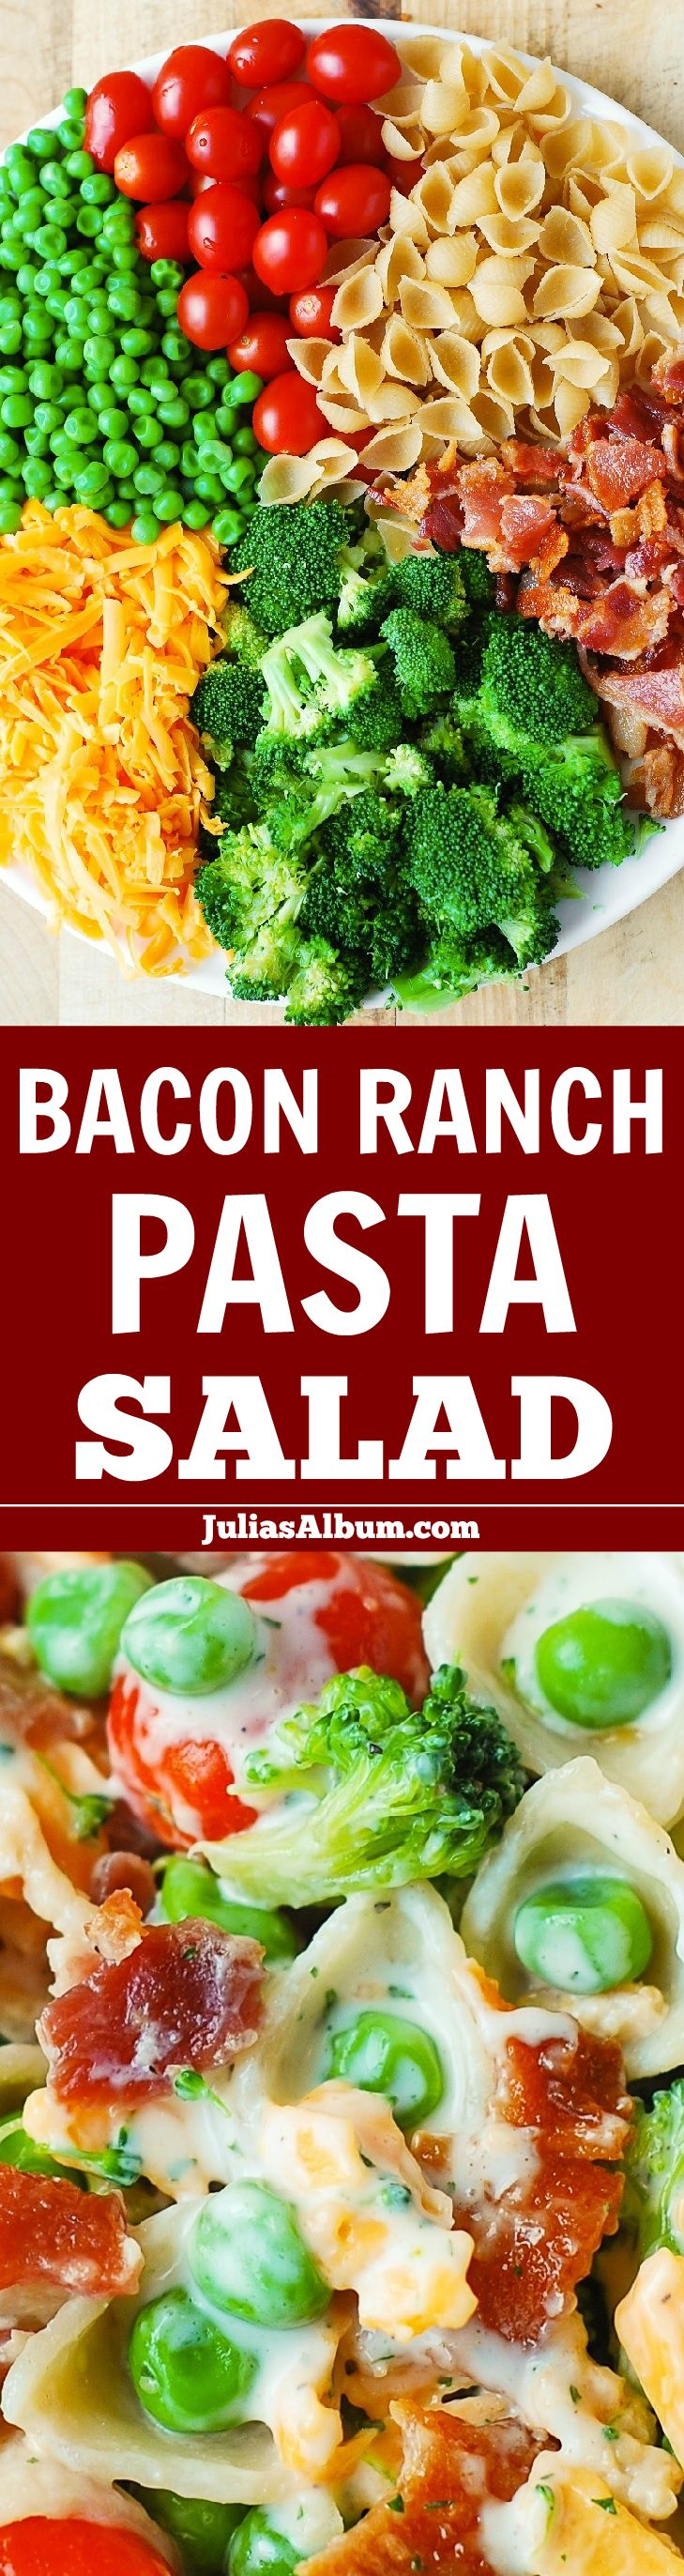 Bacon Ranch Pasta Salad - LOADED with veggies (broccoli, cherry tomatoes, sweet peas), sharp Cheddar cheese, pasta shells, and bacon!